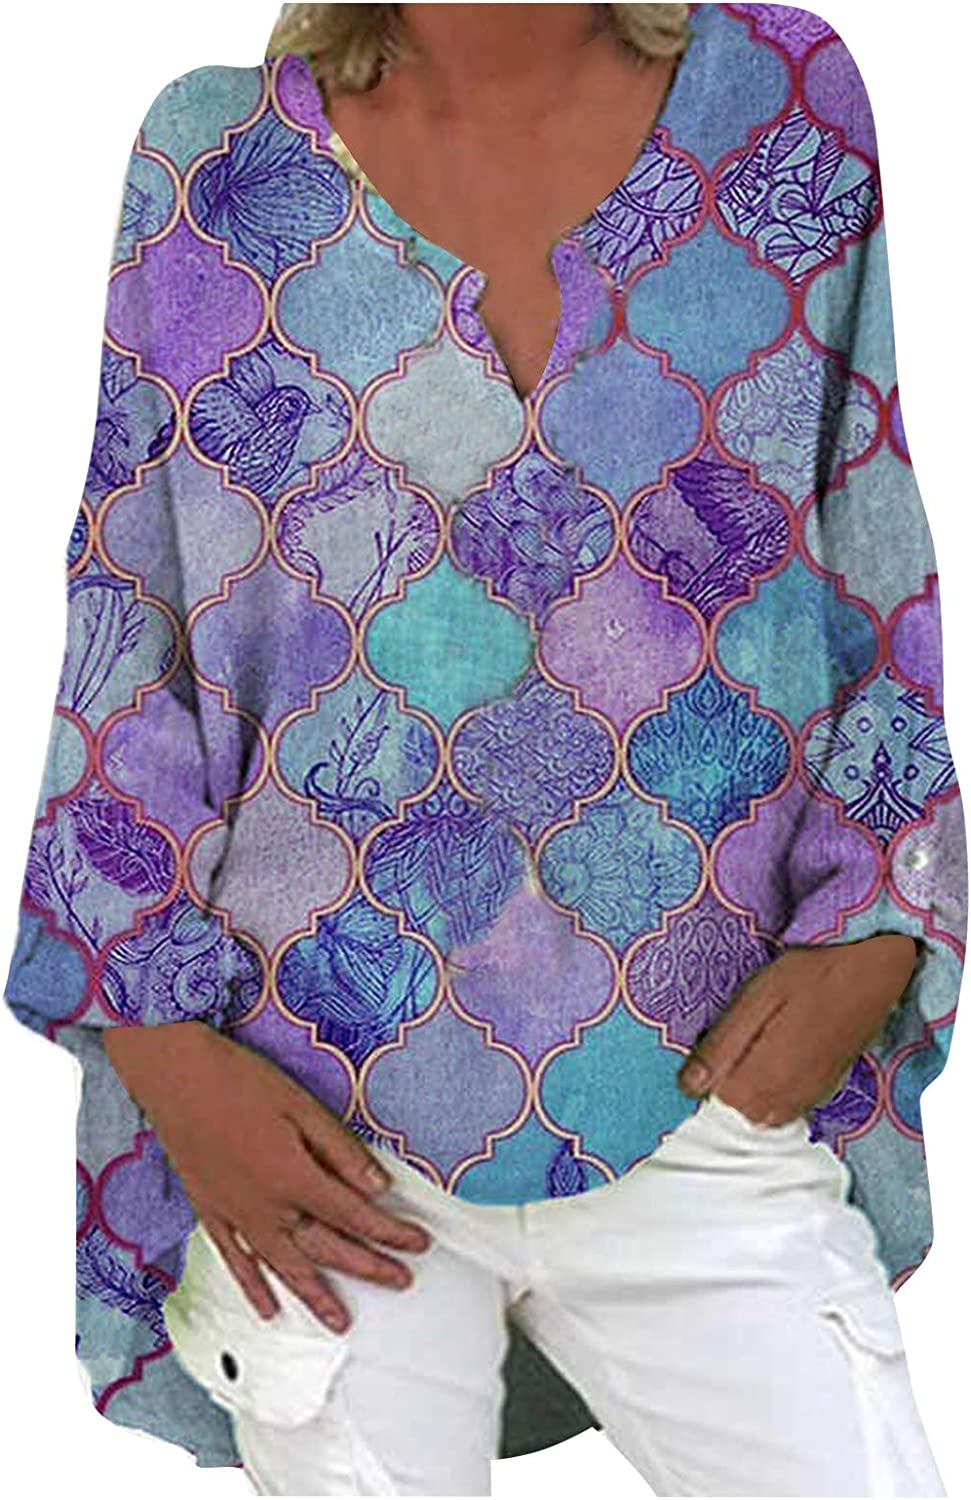 Plus Size Limited time trial price Printed Blouses for Women Neck Oklahoma City Mall Graphic Loose V Floral